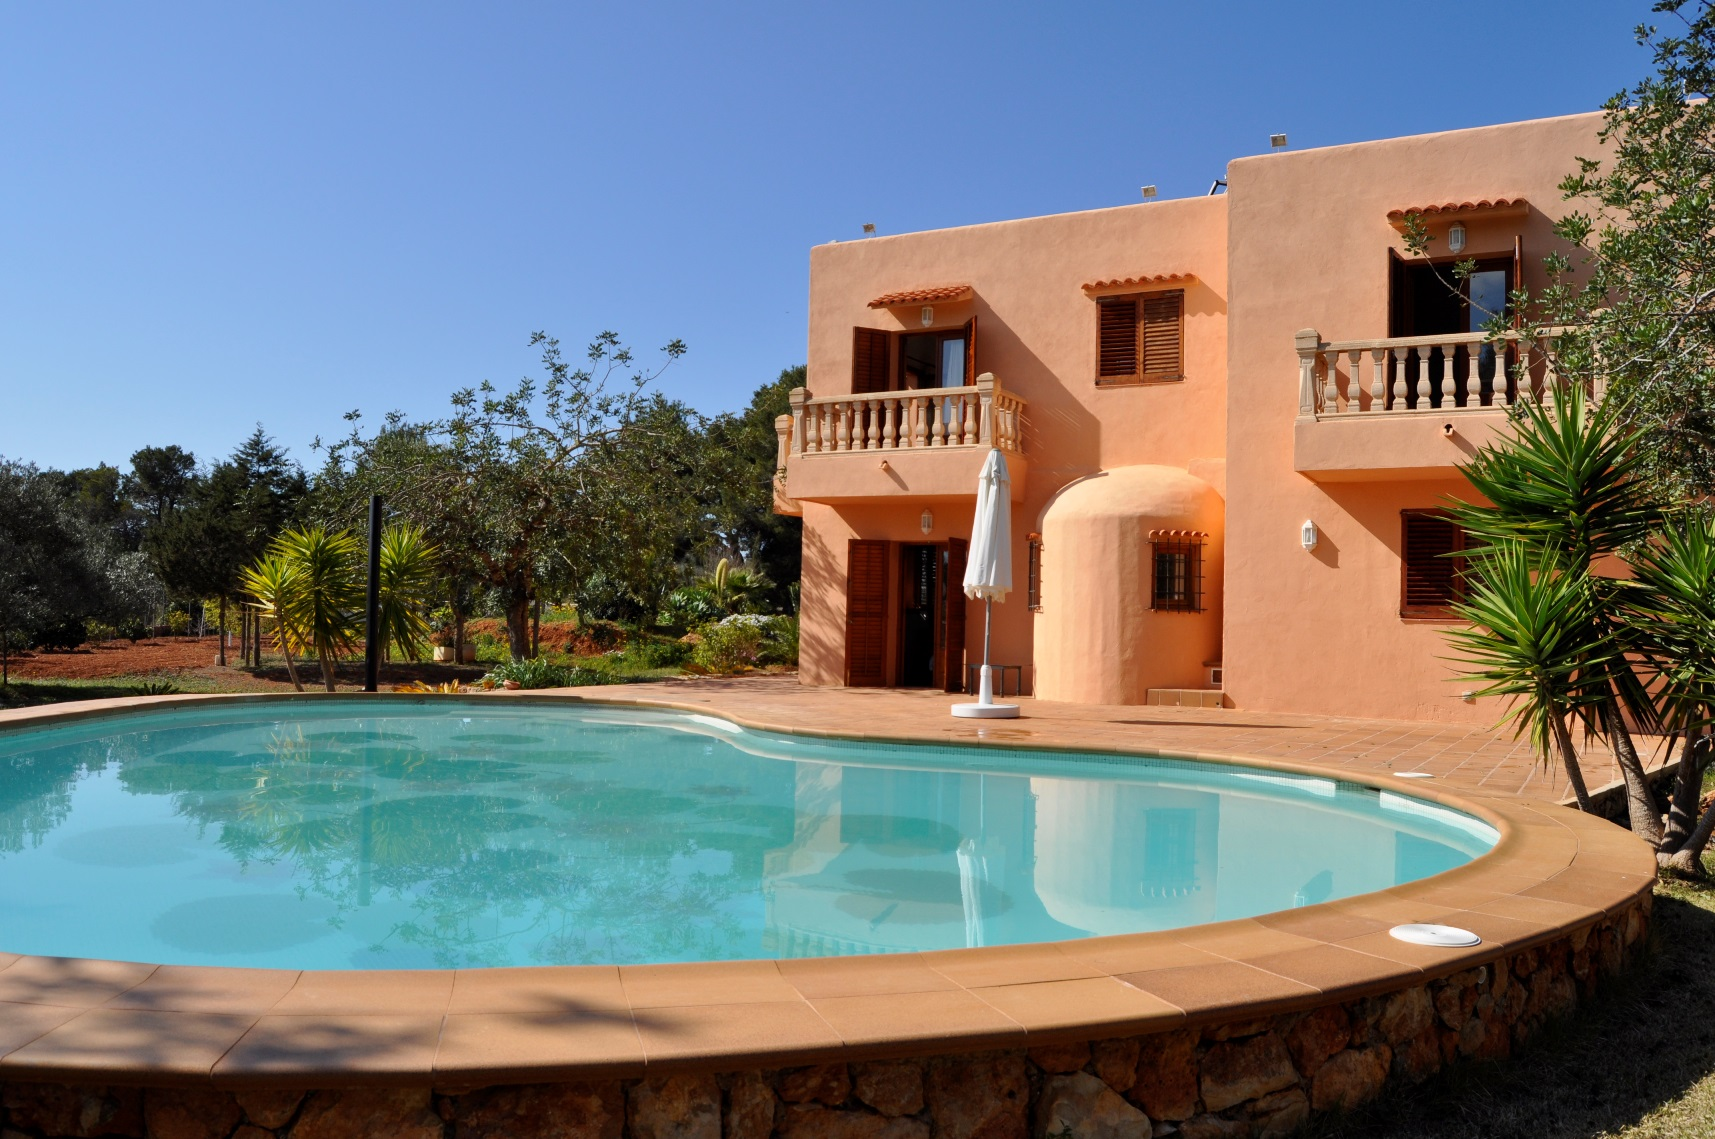 Properties for sale in ibiza luxury villas rural houses country houses - Casa con piscina ...